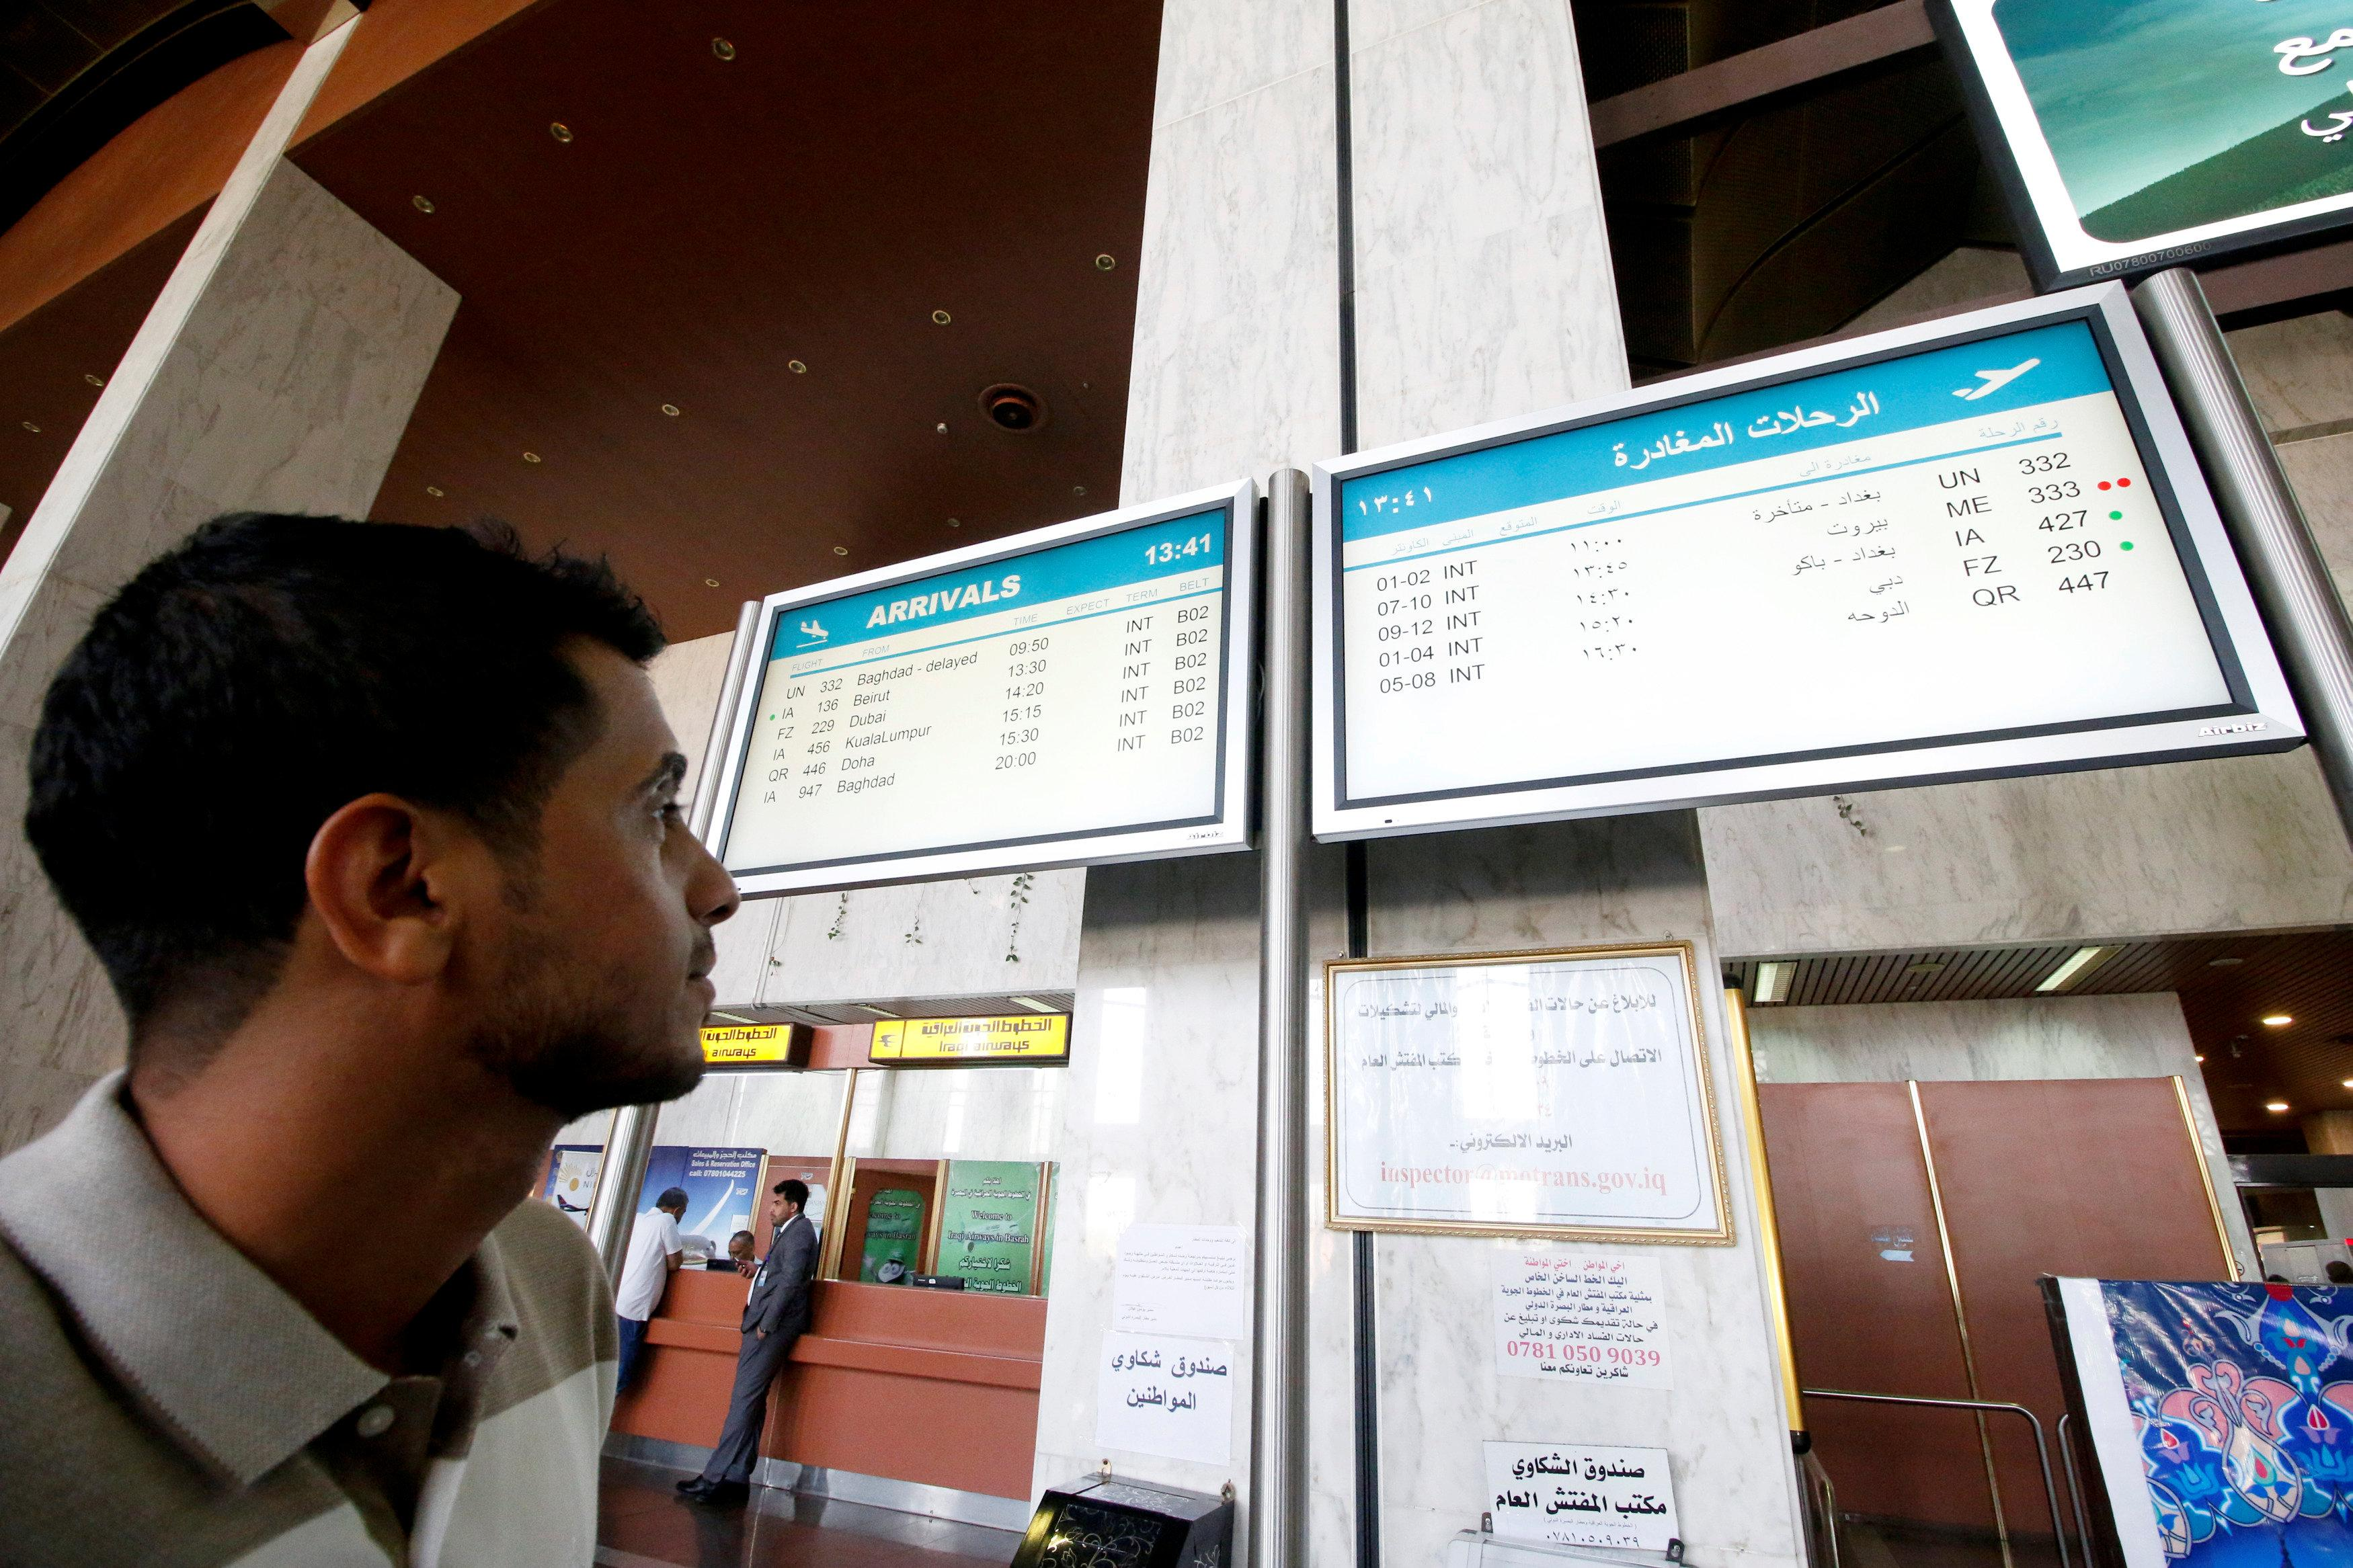 A man looks at a flight information board at Basra airport after it was targeted by rocket fire in Basra, Iraq September 8, 2018. Essam al-Sudani